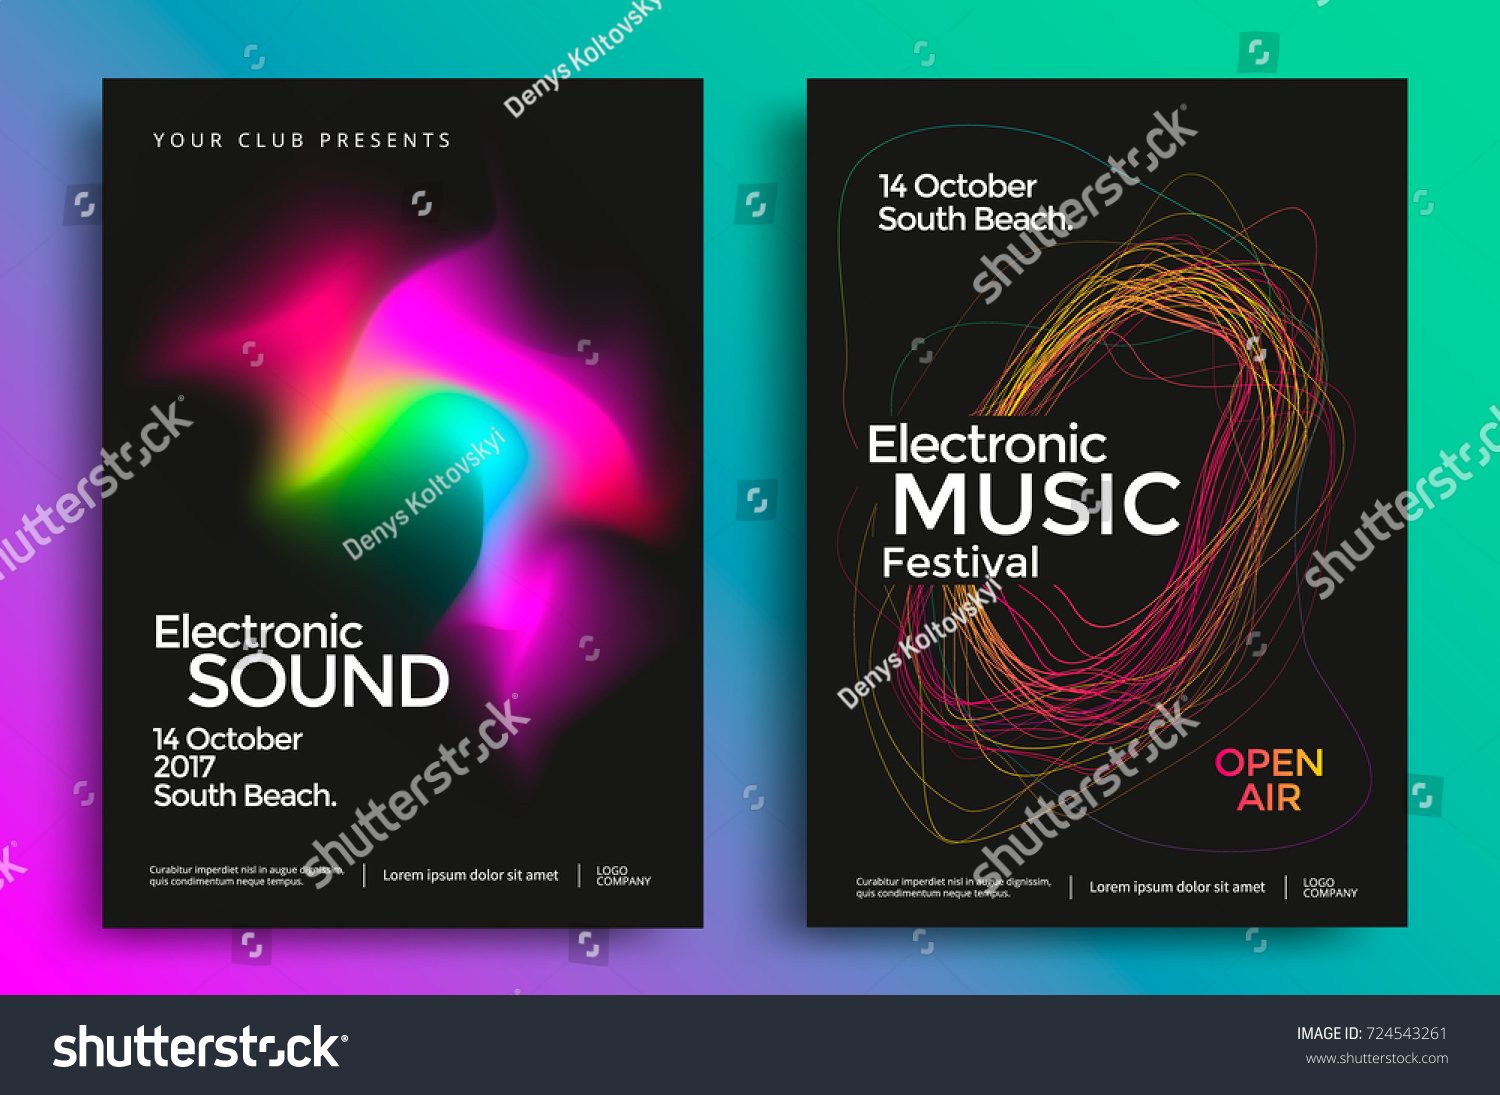 Electronic Music Festival Poster Abstract Gradient Stock Vector ...